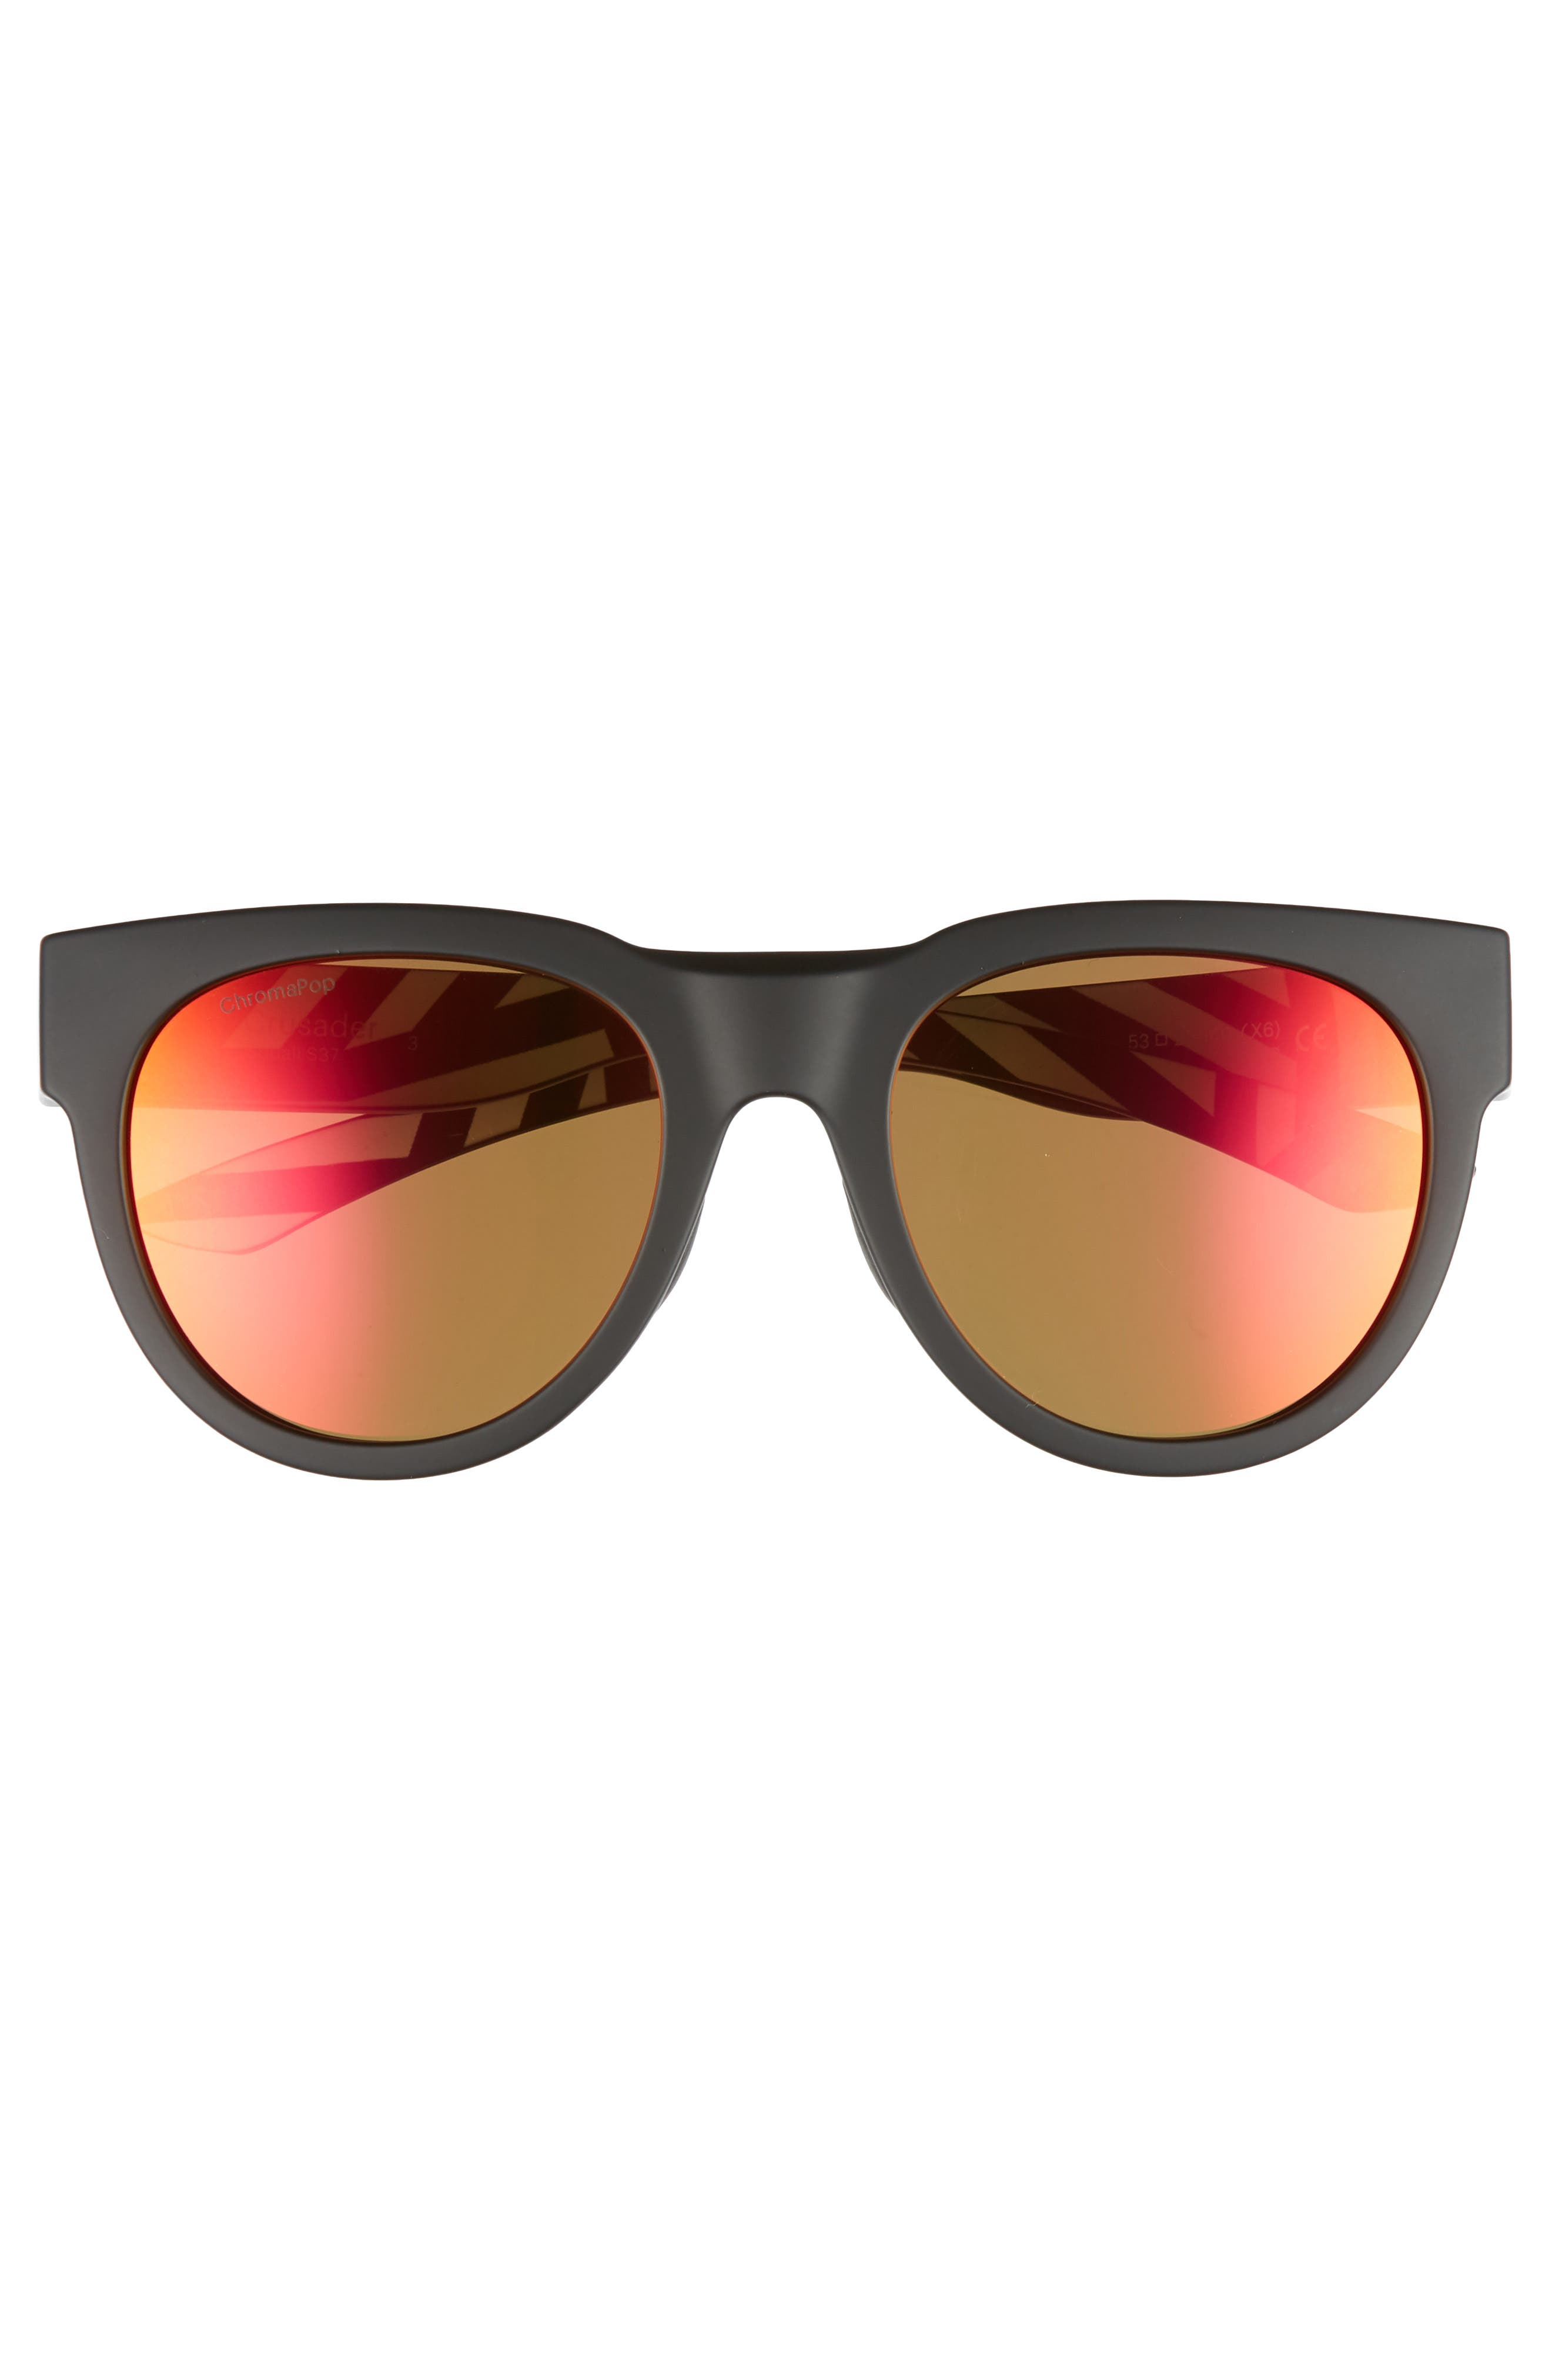 Crusader 53mm ChromaPop<sup>™</sup> Round Sunglasses,                             Alternate thumbnail 2, color,                             Squall/ Sun Red Mirror